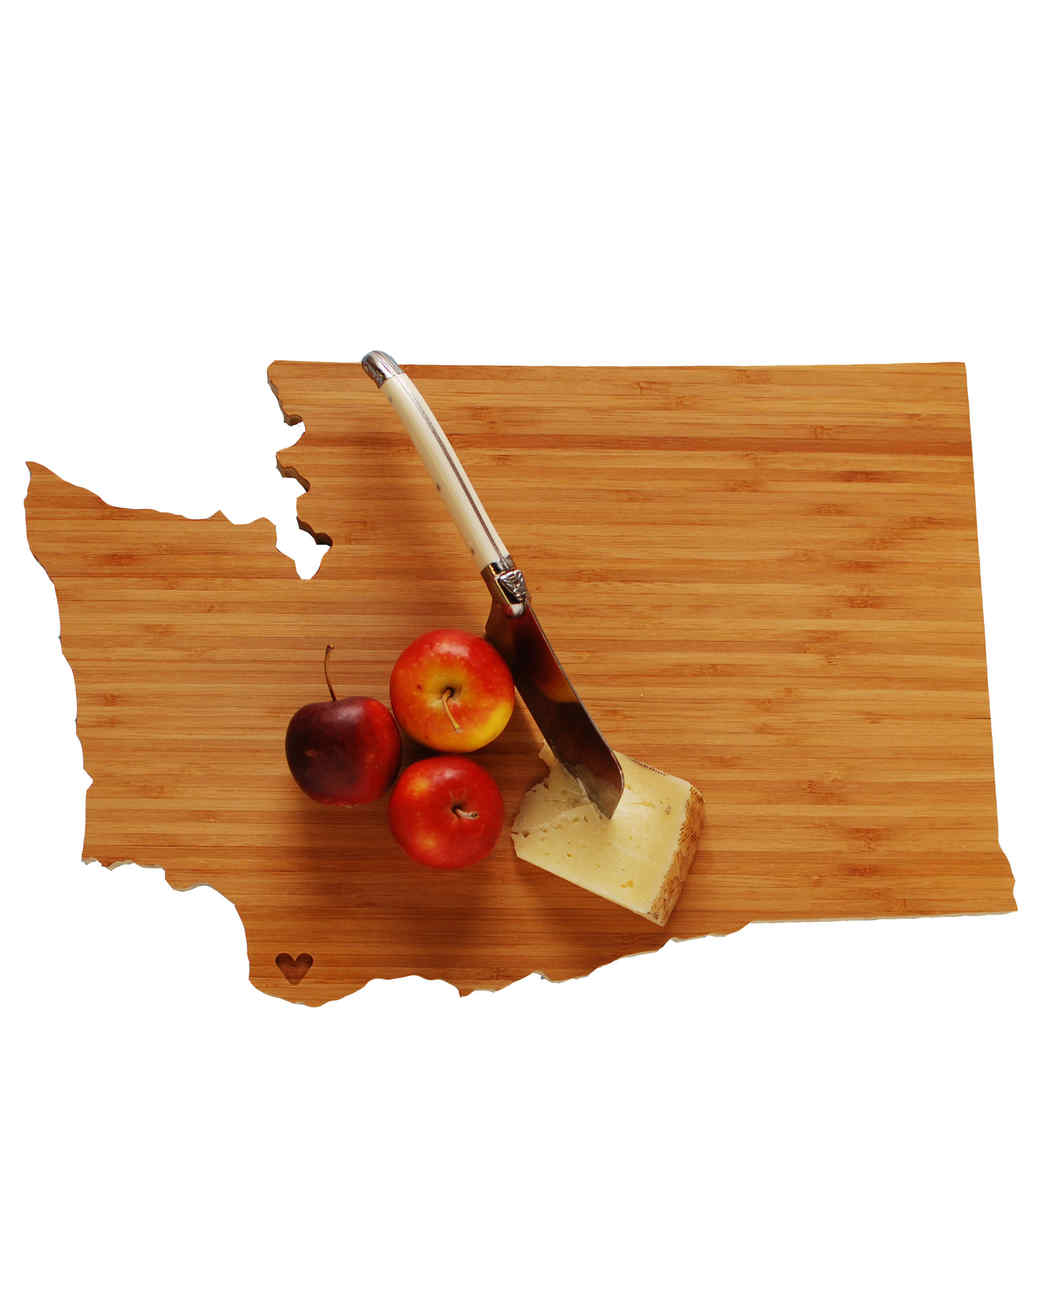 aheirloom_washington-cutting-board.jpg